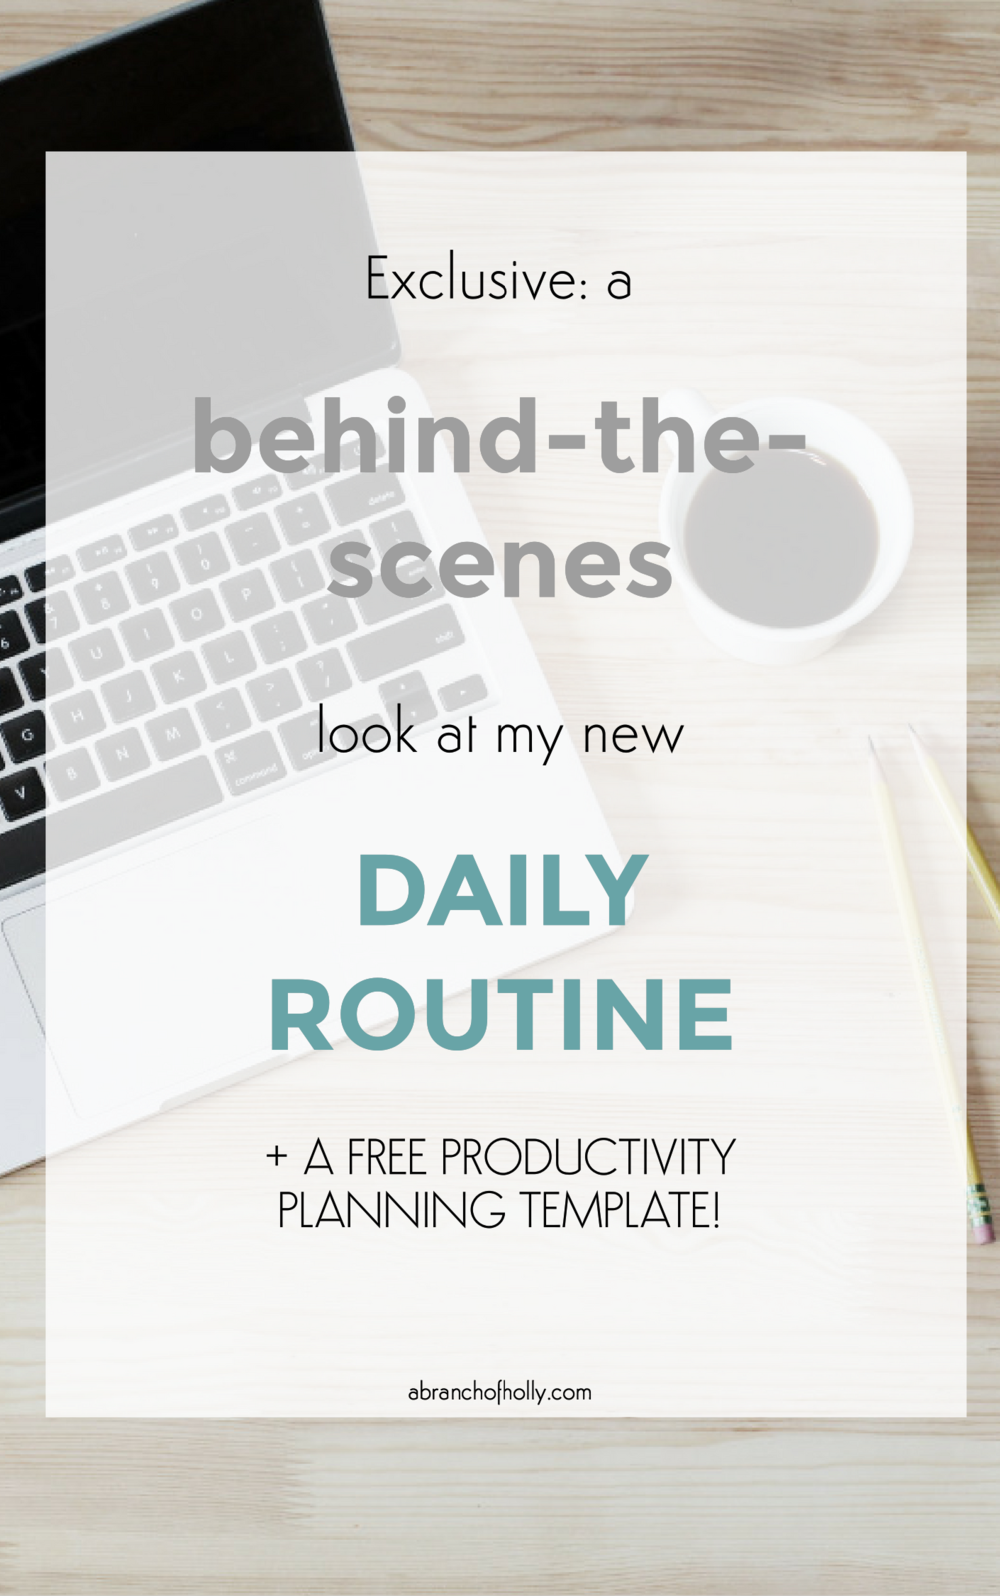 exclusive: a behind-the-scenes-look at my new daily routine